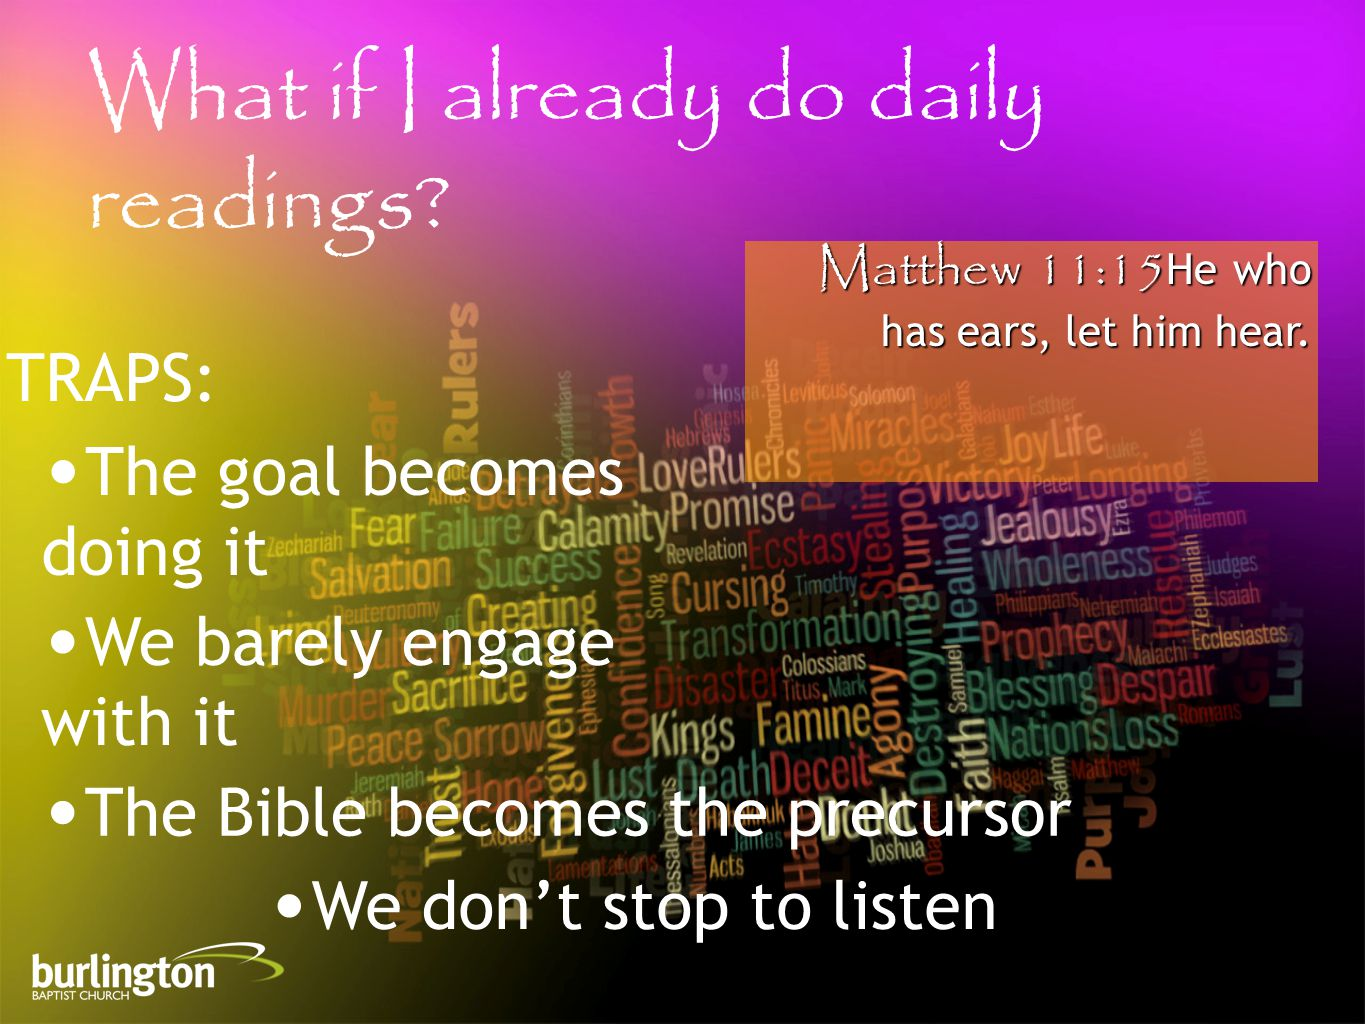 Matthew 11:15He who has ears, let him hear. What if I already do daily readings.